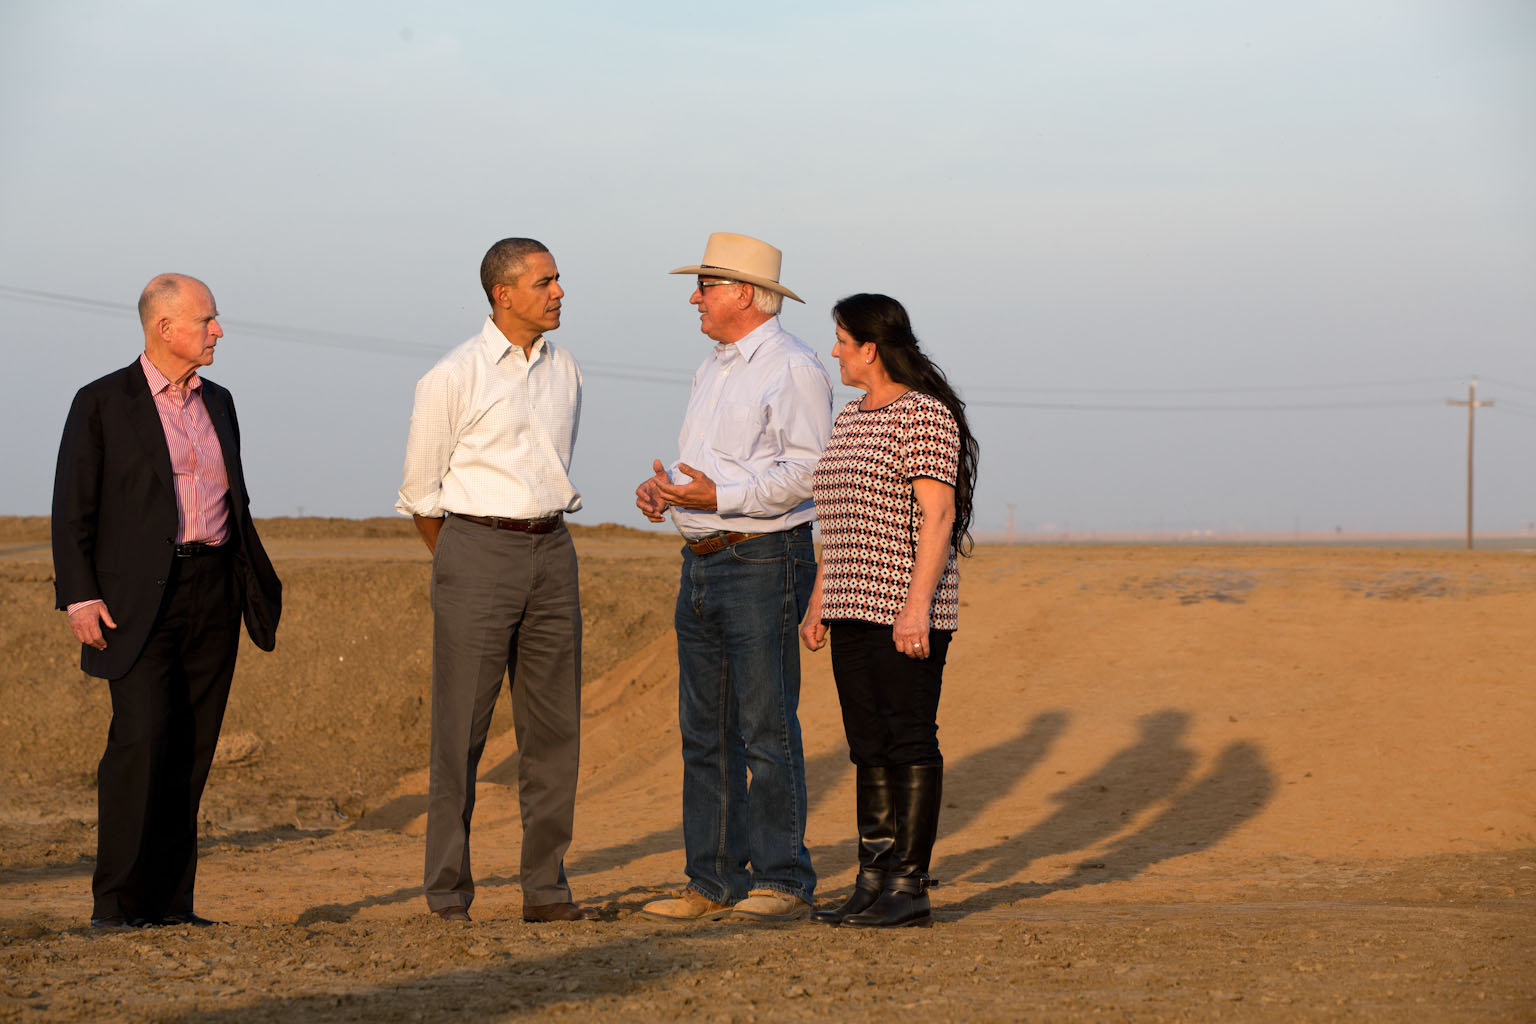 President Barack Obama touring a field with California farmer Joe Del Bosque and his wife Maria in 2014 in response to one of California's worst droughts in over 100 years.